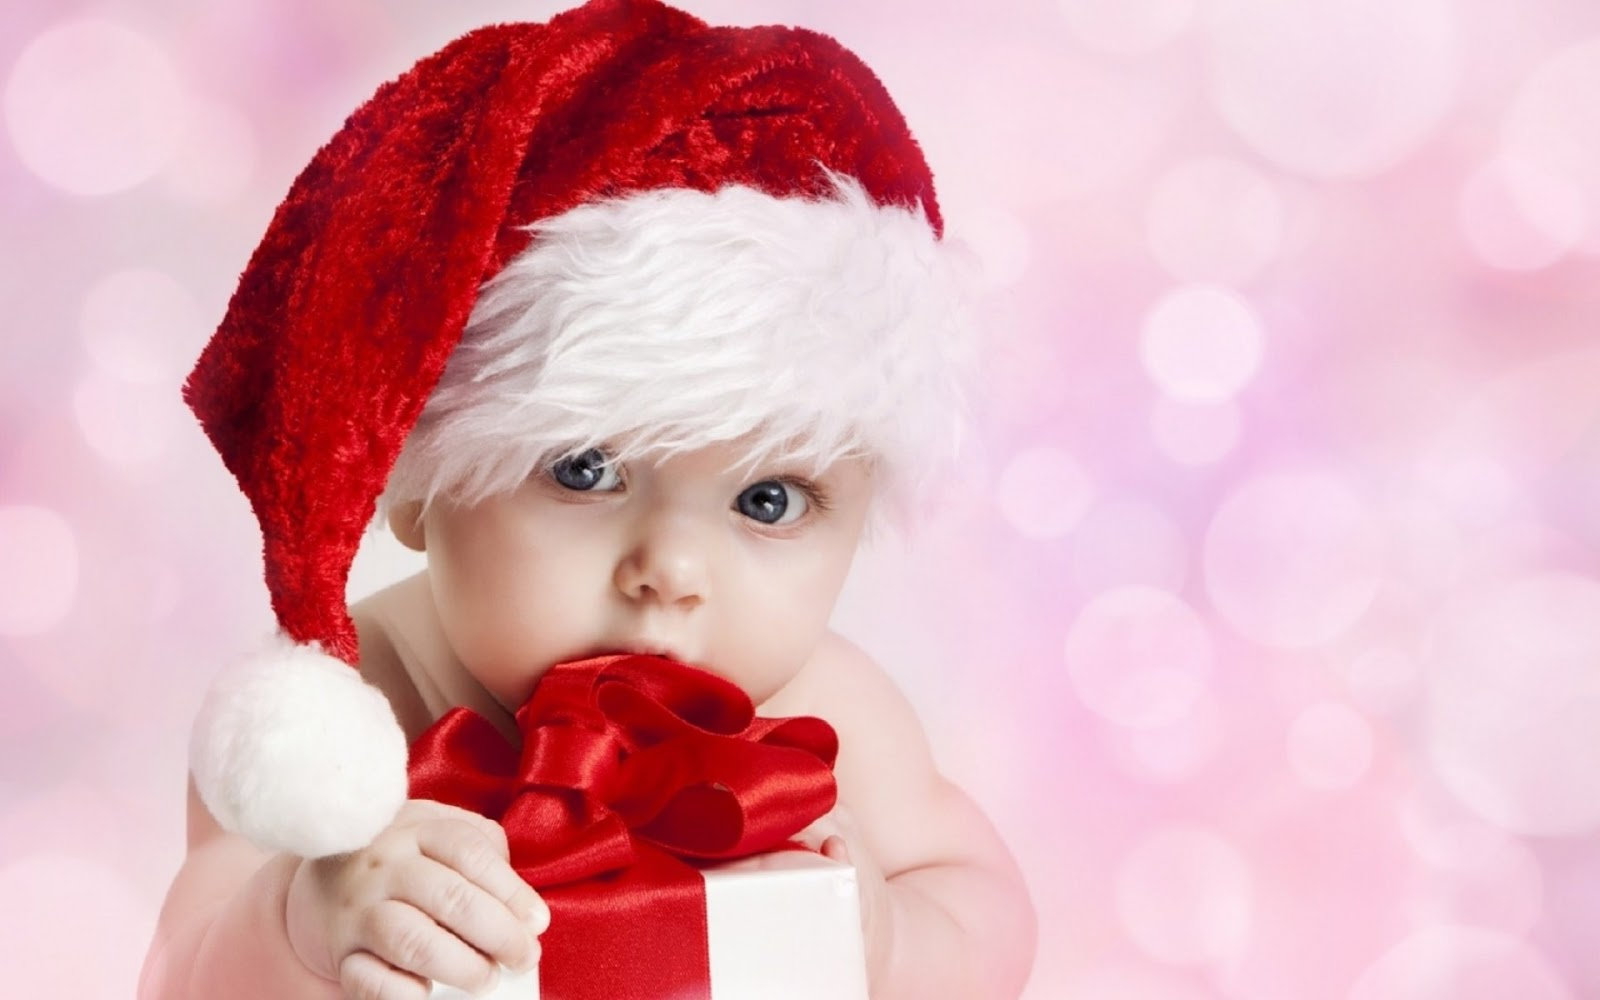 e77cf500ee6 Beautiful Baby in Christmas outfit Images for wishing Merry Christmas